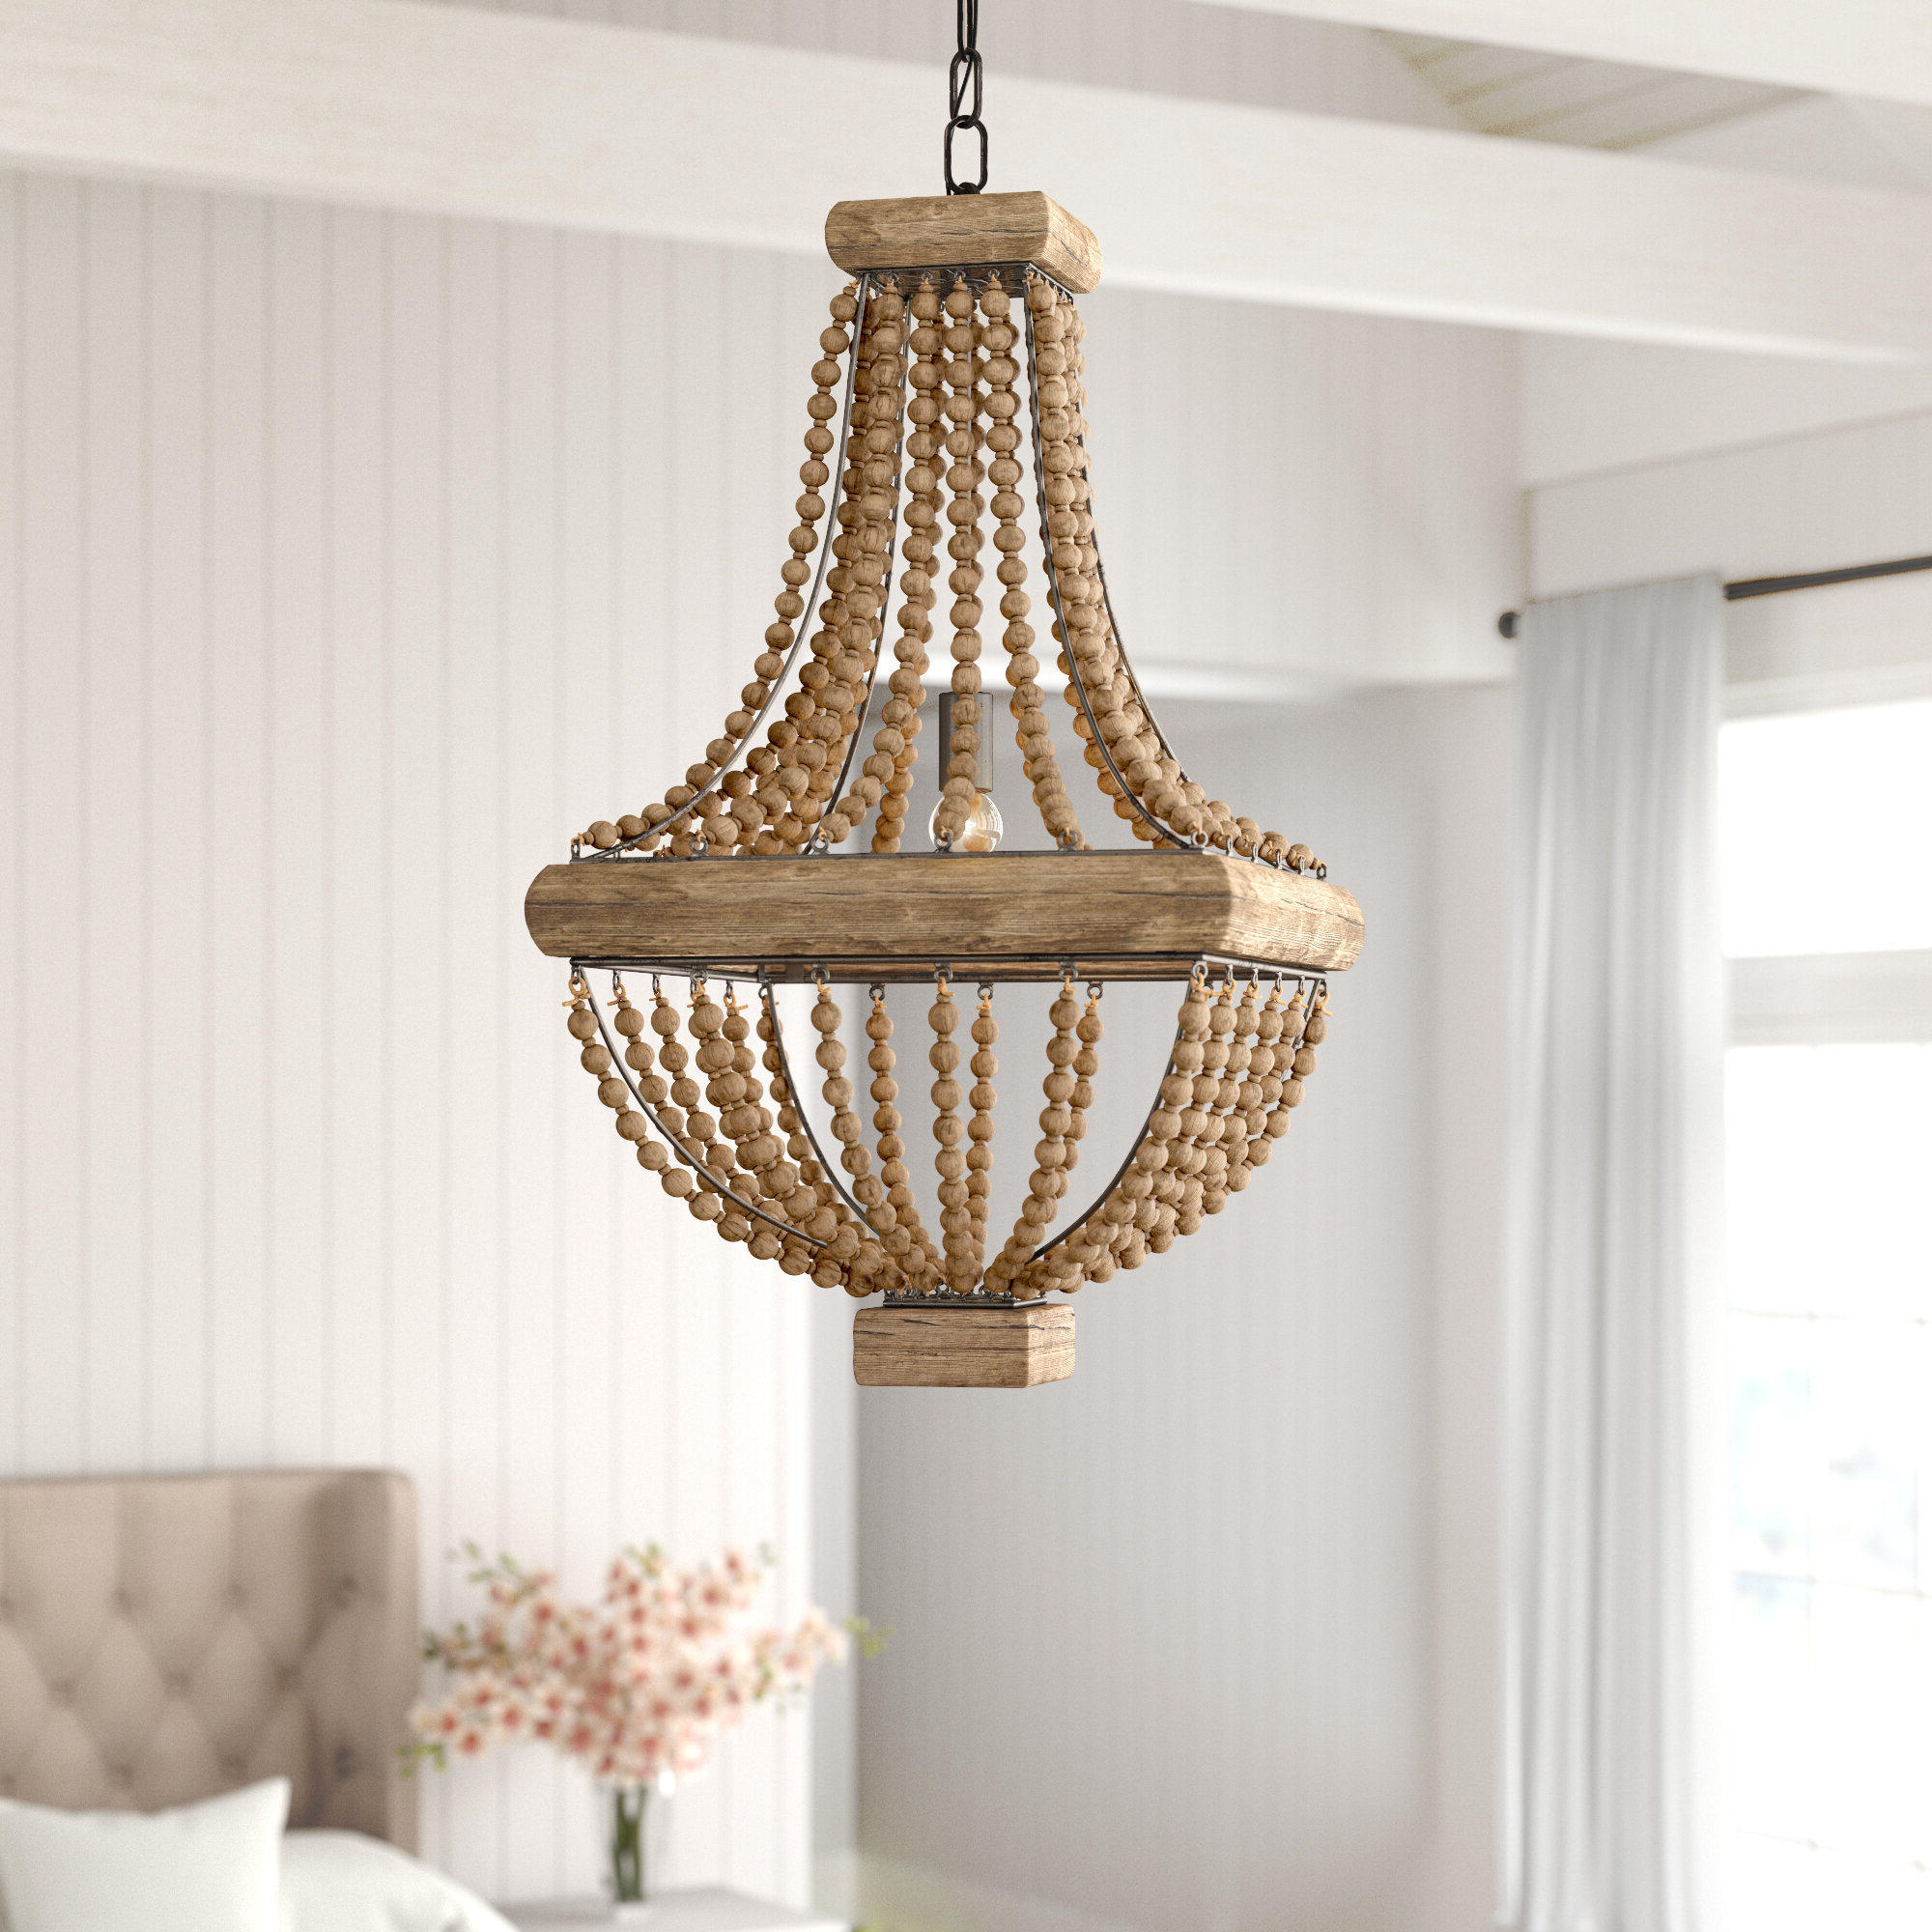 Spokane 1 Light Single Urn Pendants Regarding Most Recently Released Brisa 1 Light Single Geometric Pendant (Gallery 9 of 20)